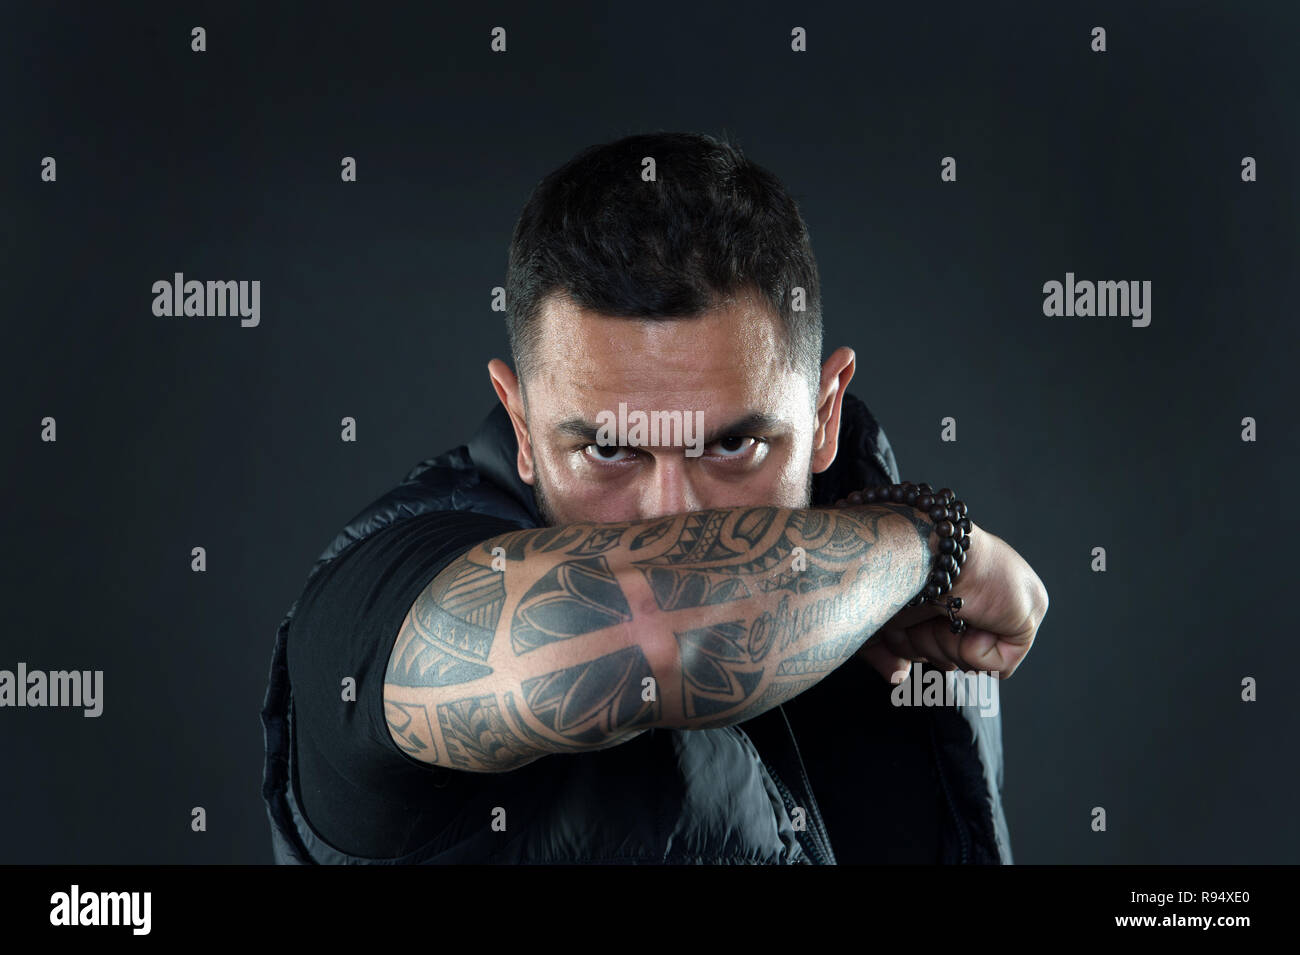 f52511ed3 Do tattoos hide lack of masculinity. Man brutal guy cover face with tattooed  arm.